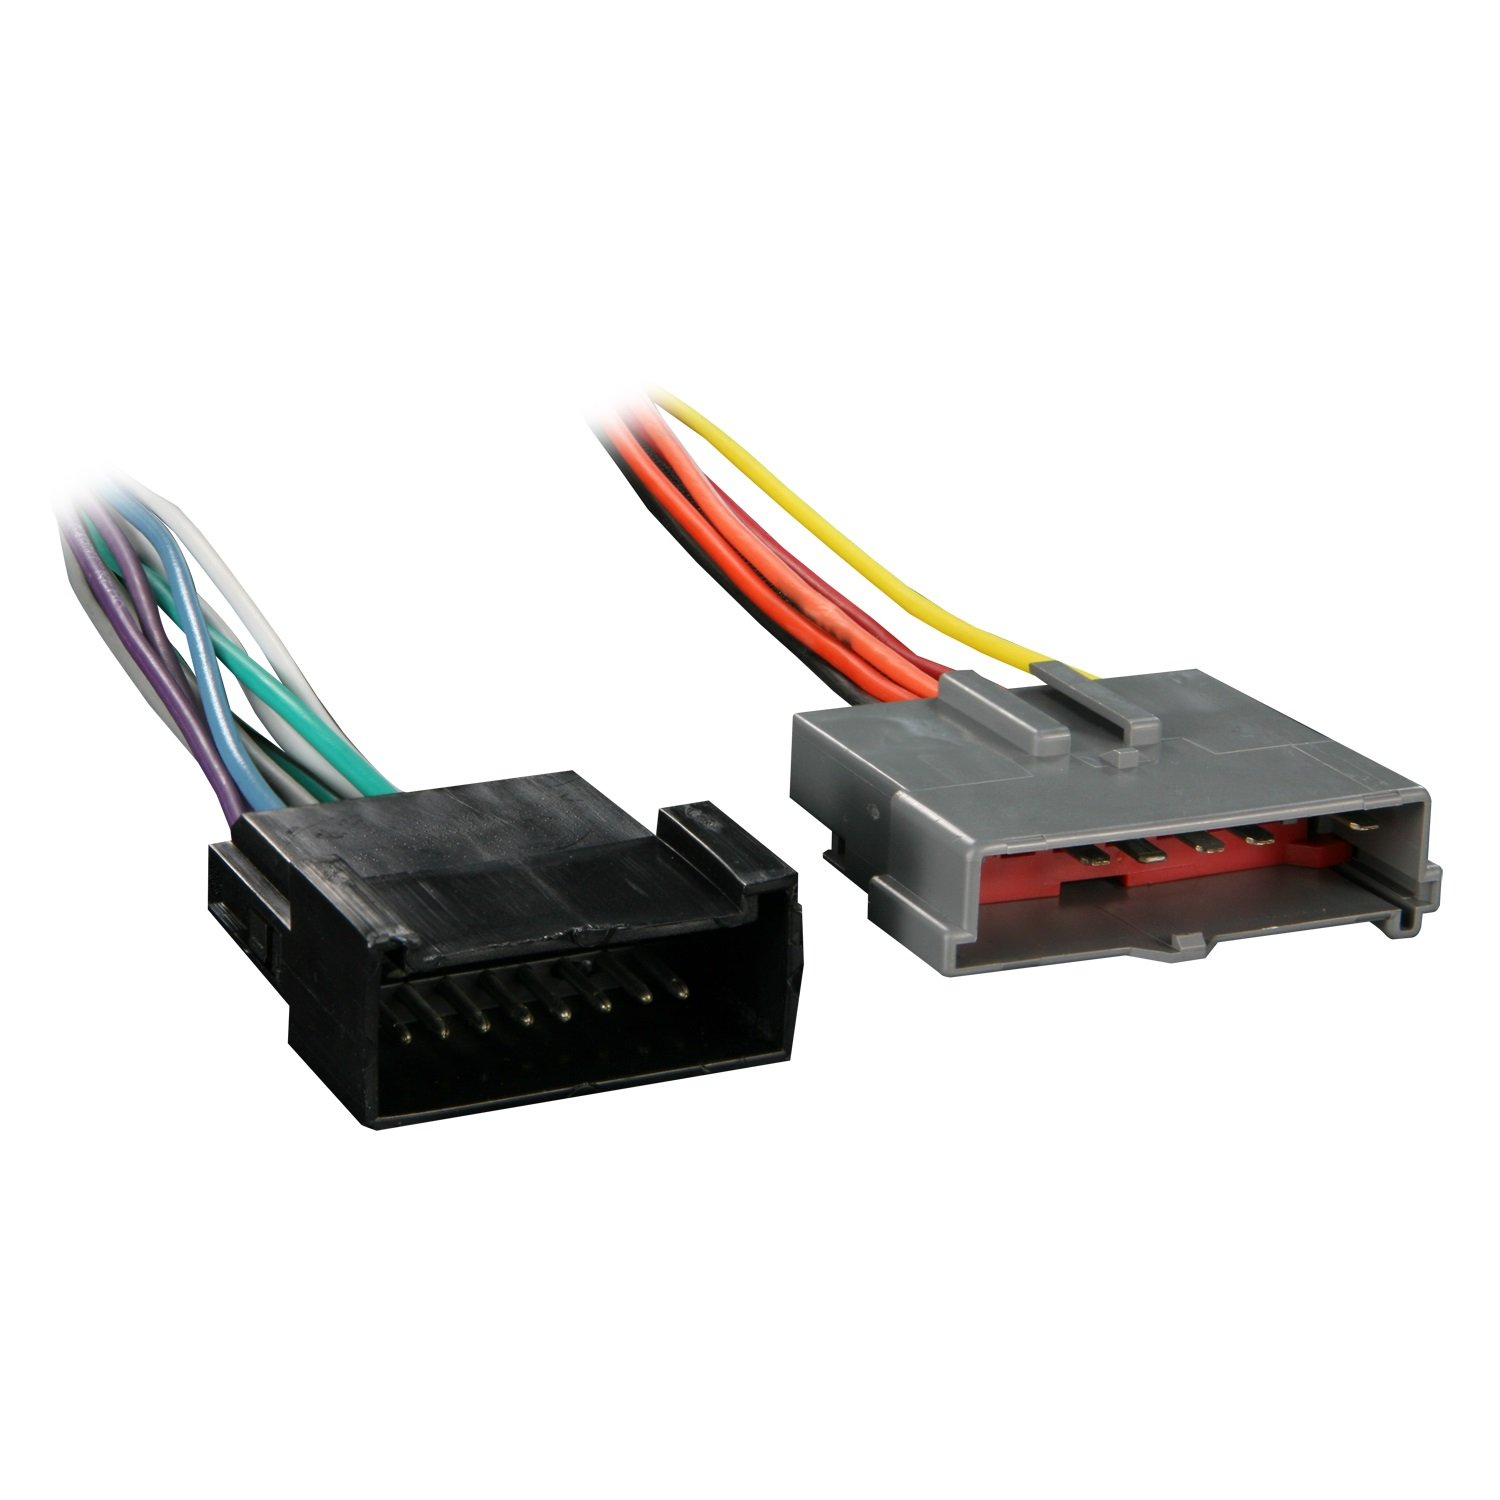 61ze7L0%2Bv8L._SL1500_ amazon com metra 70 5605 amplifier bypass harness for ford 1997 Ford Contour at suagrazia.org